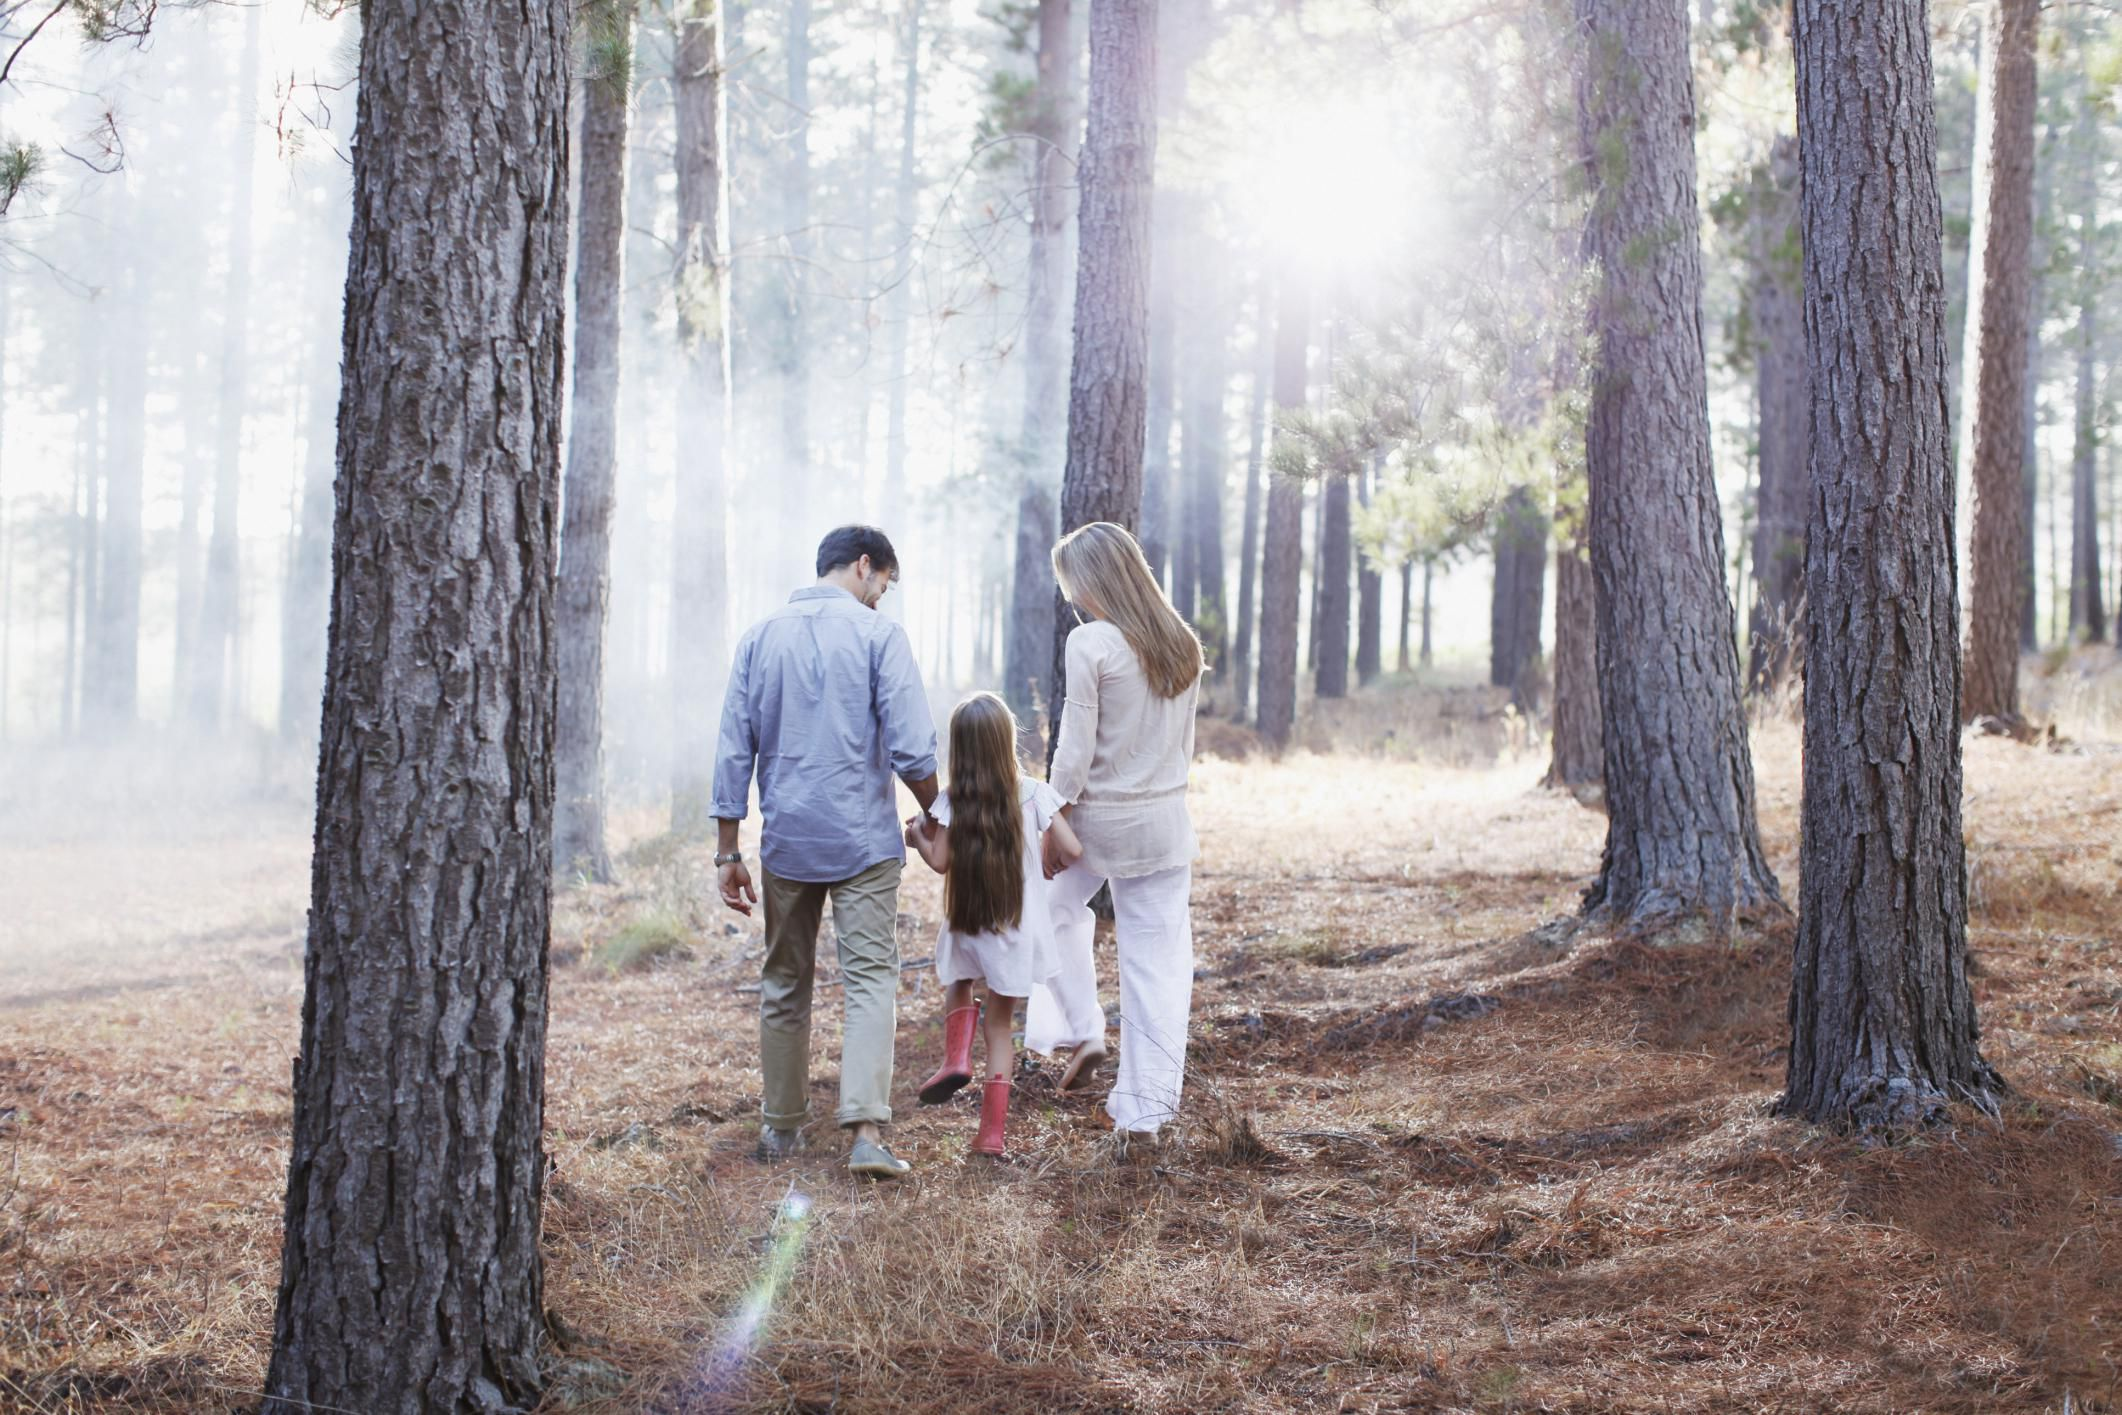 Child Custody Frequently Asked Questions